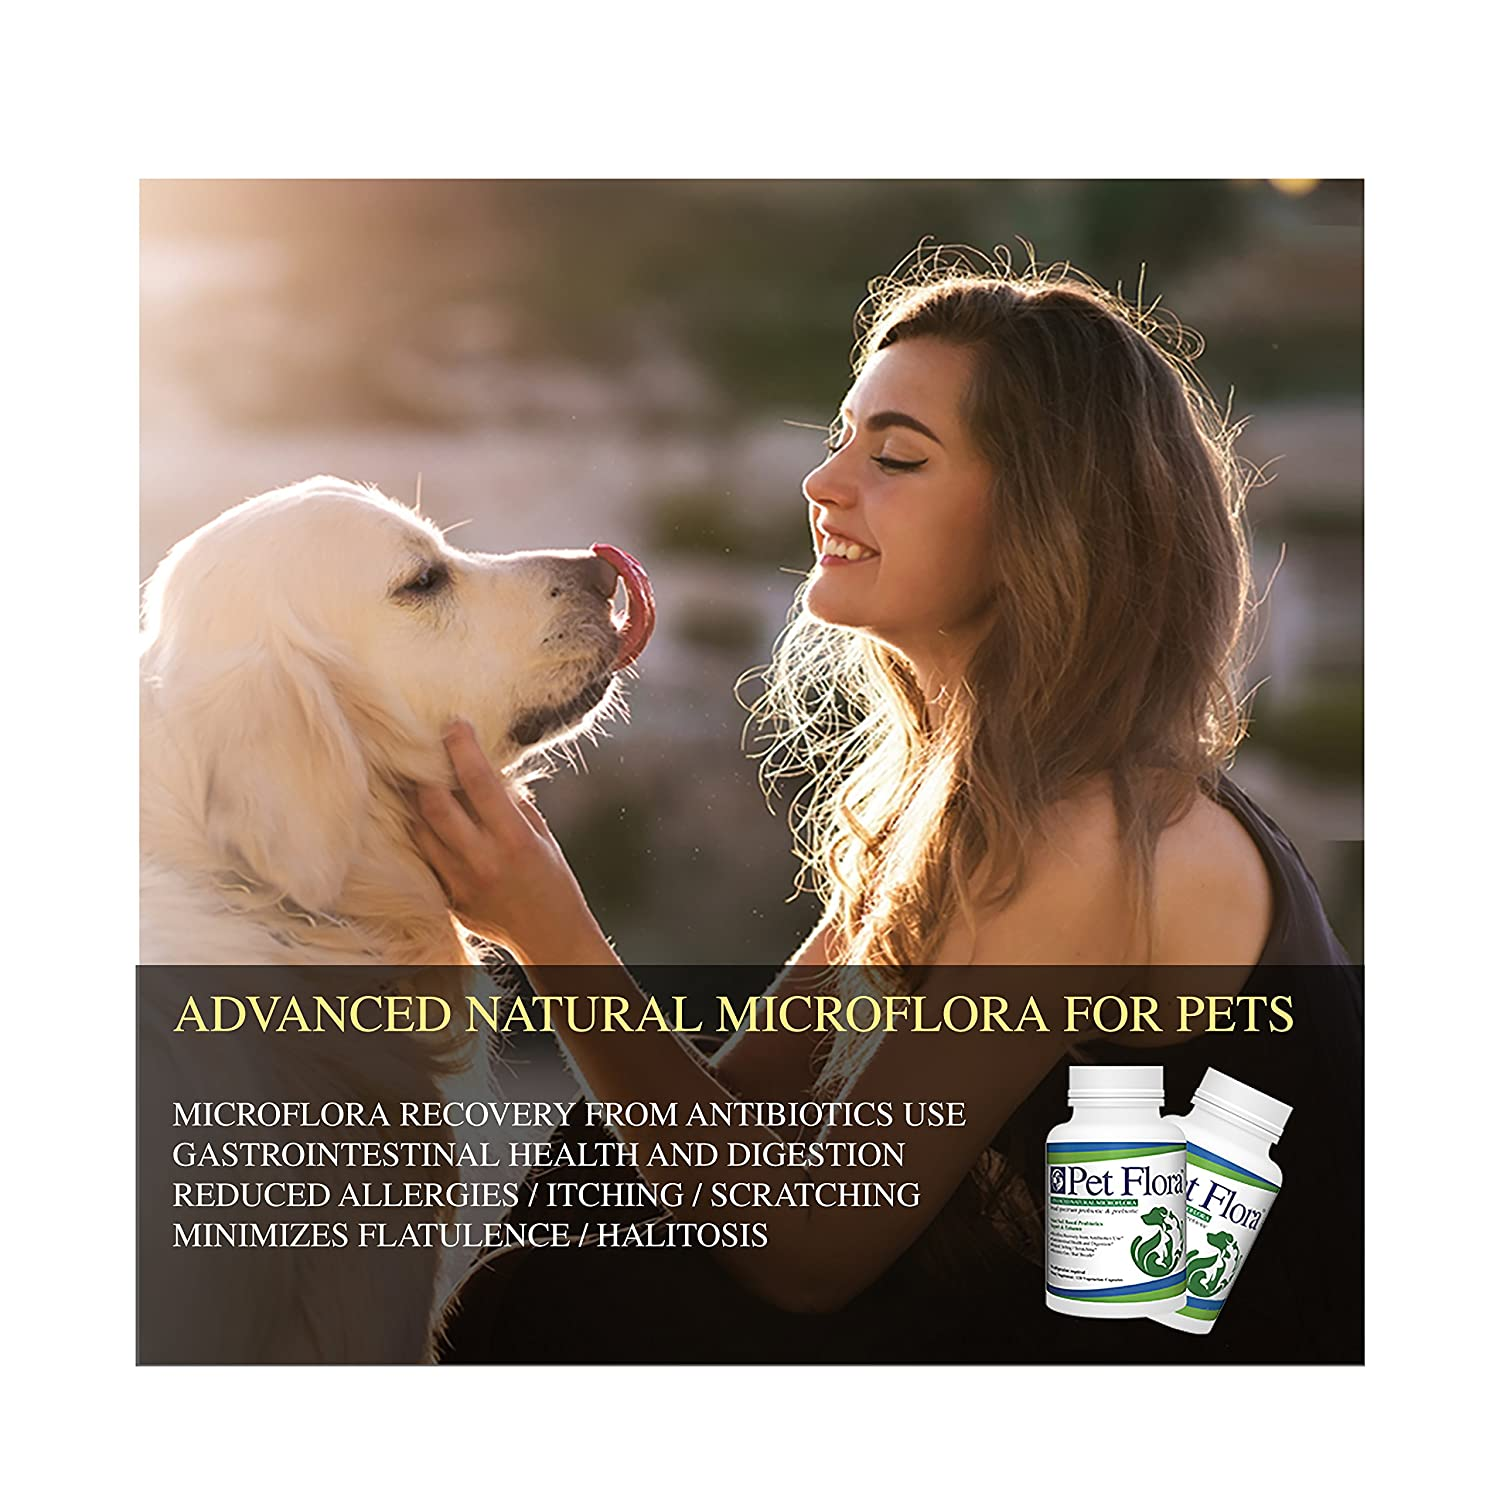 Amazon.com: Pet Flora -Soil based Broad Spectrum Prebiotic Probiotic ...